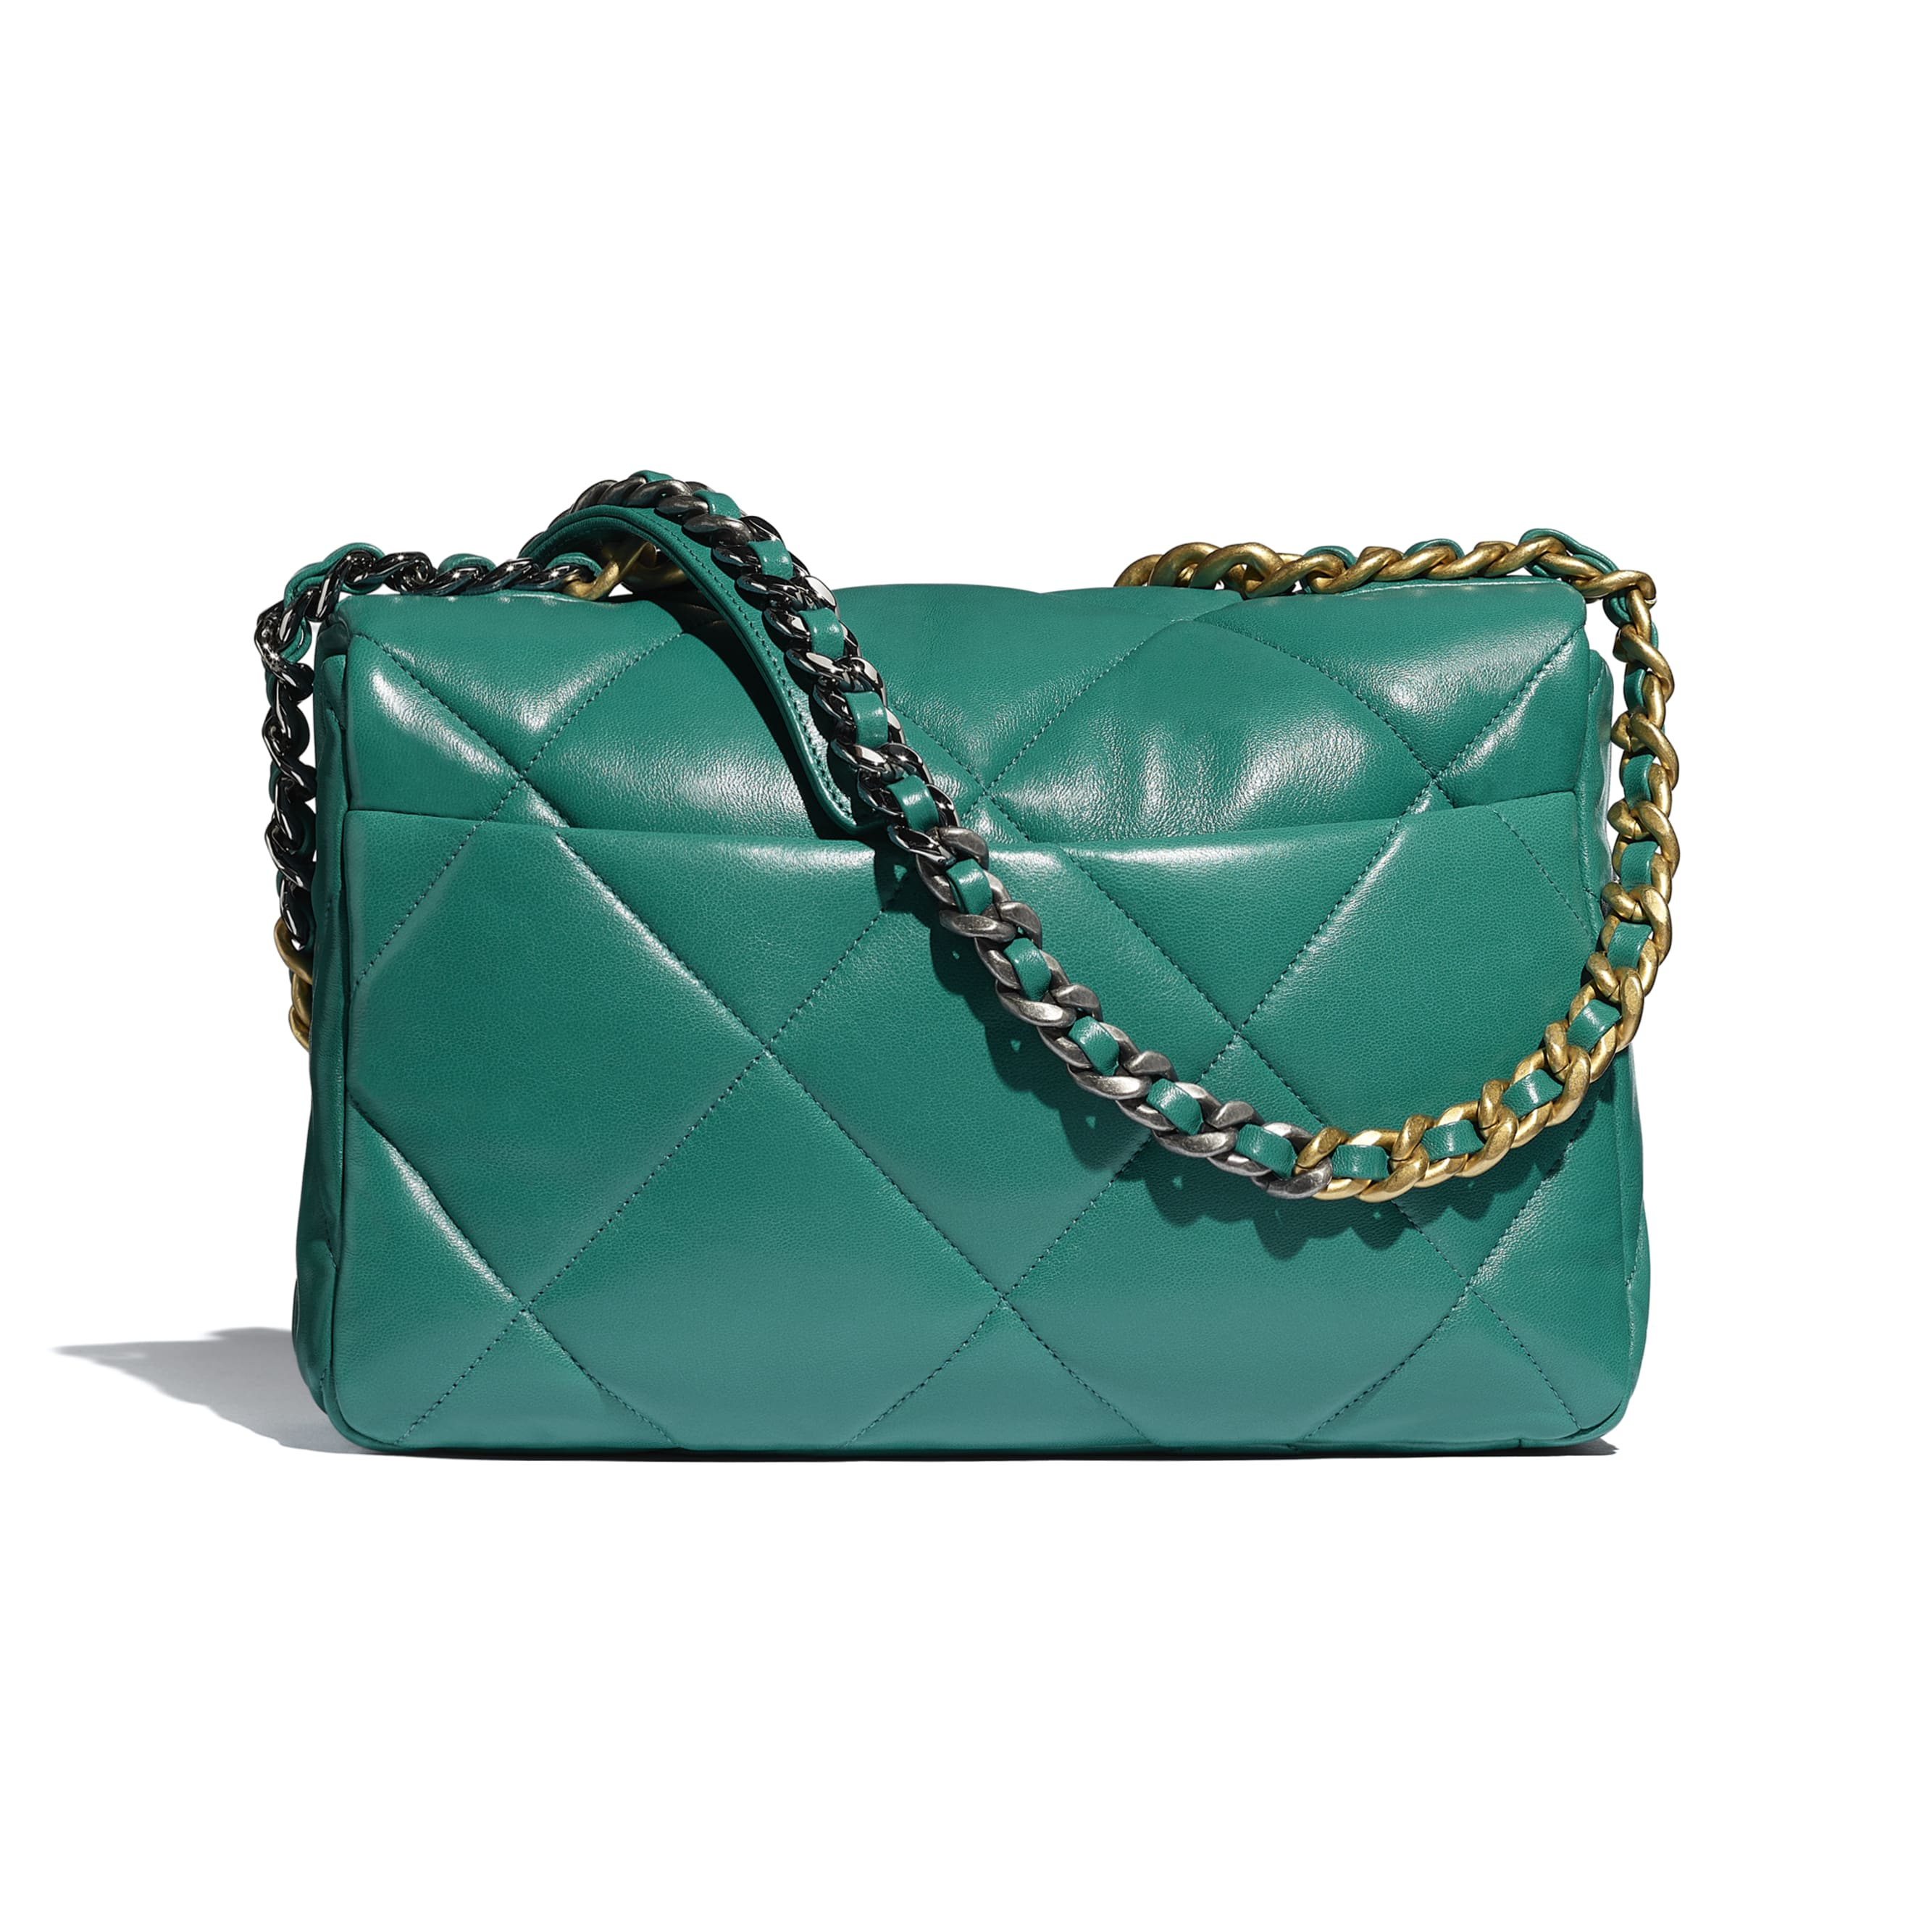 CHANEL 19 Large Flap Bag - Green - Lambskin, Gold-Tone, Silver-Tone & Ruthenium-Finish Metal - CHANEL - Alternative view - see standard sized version